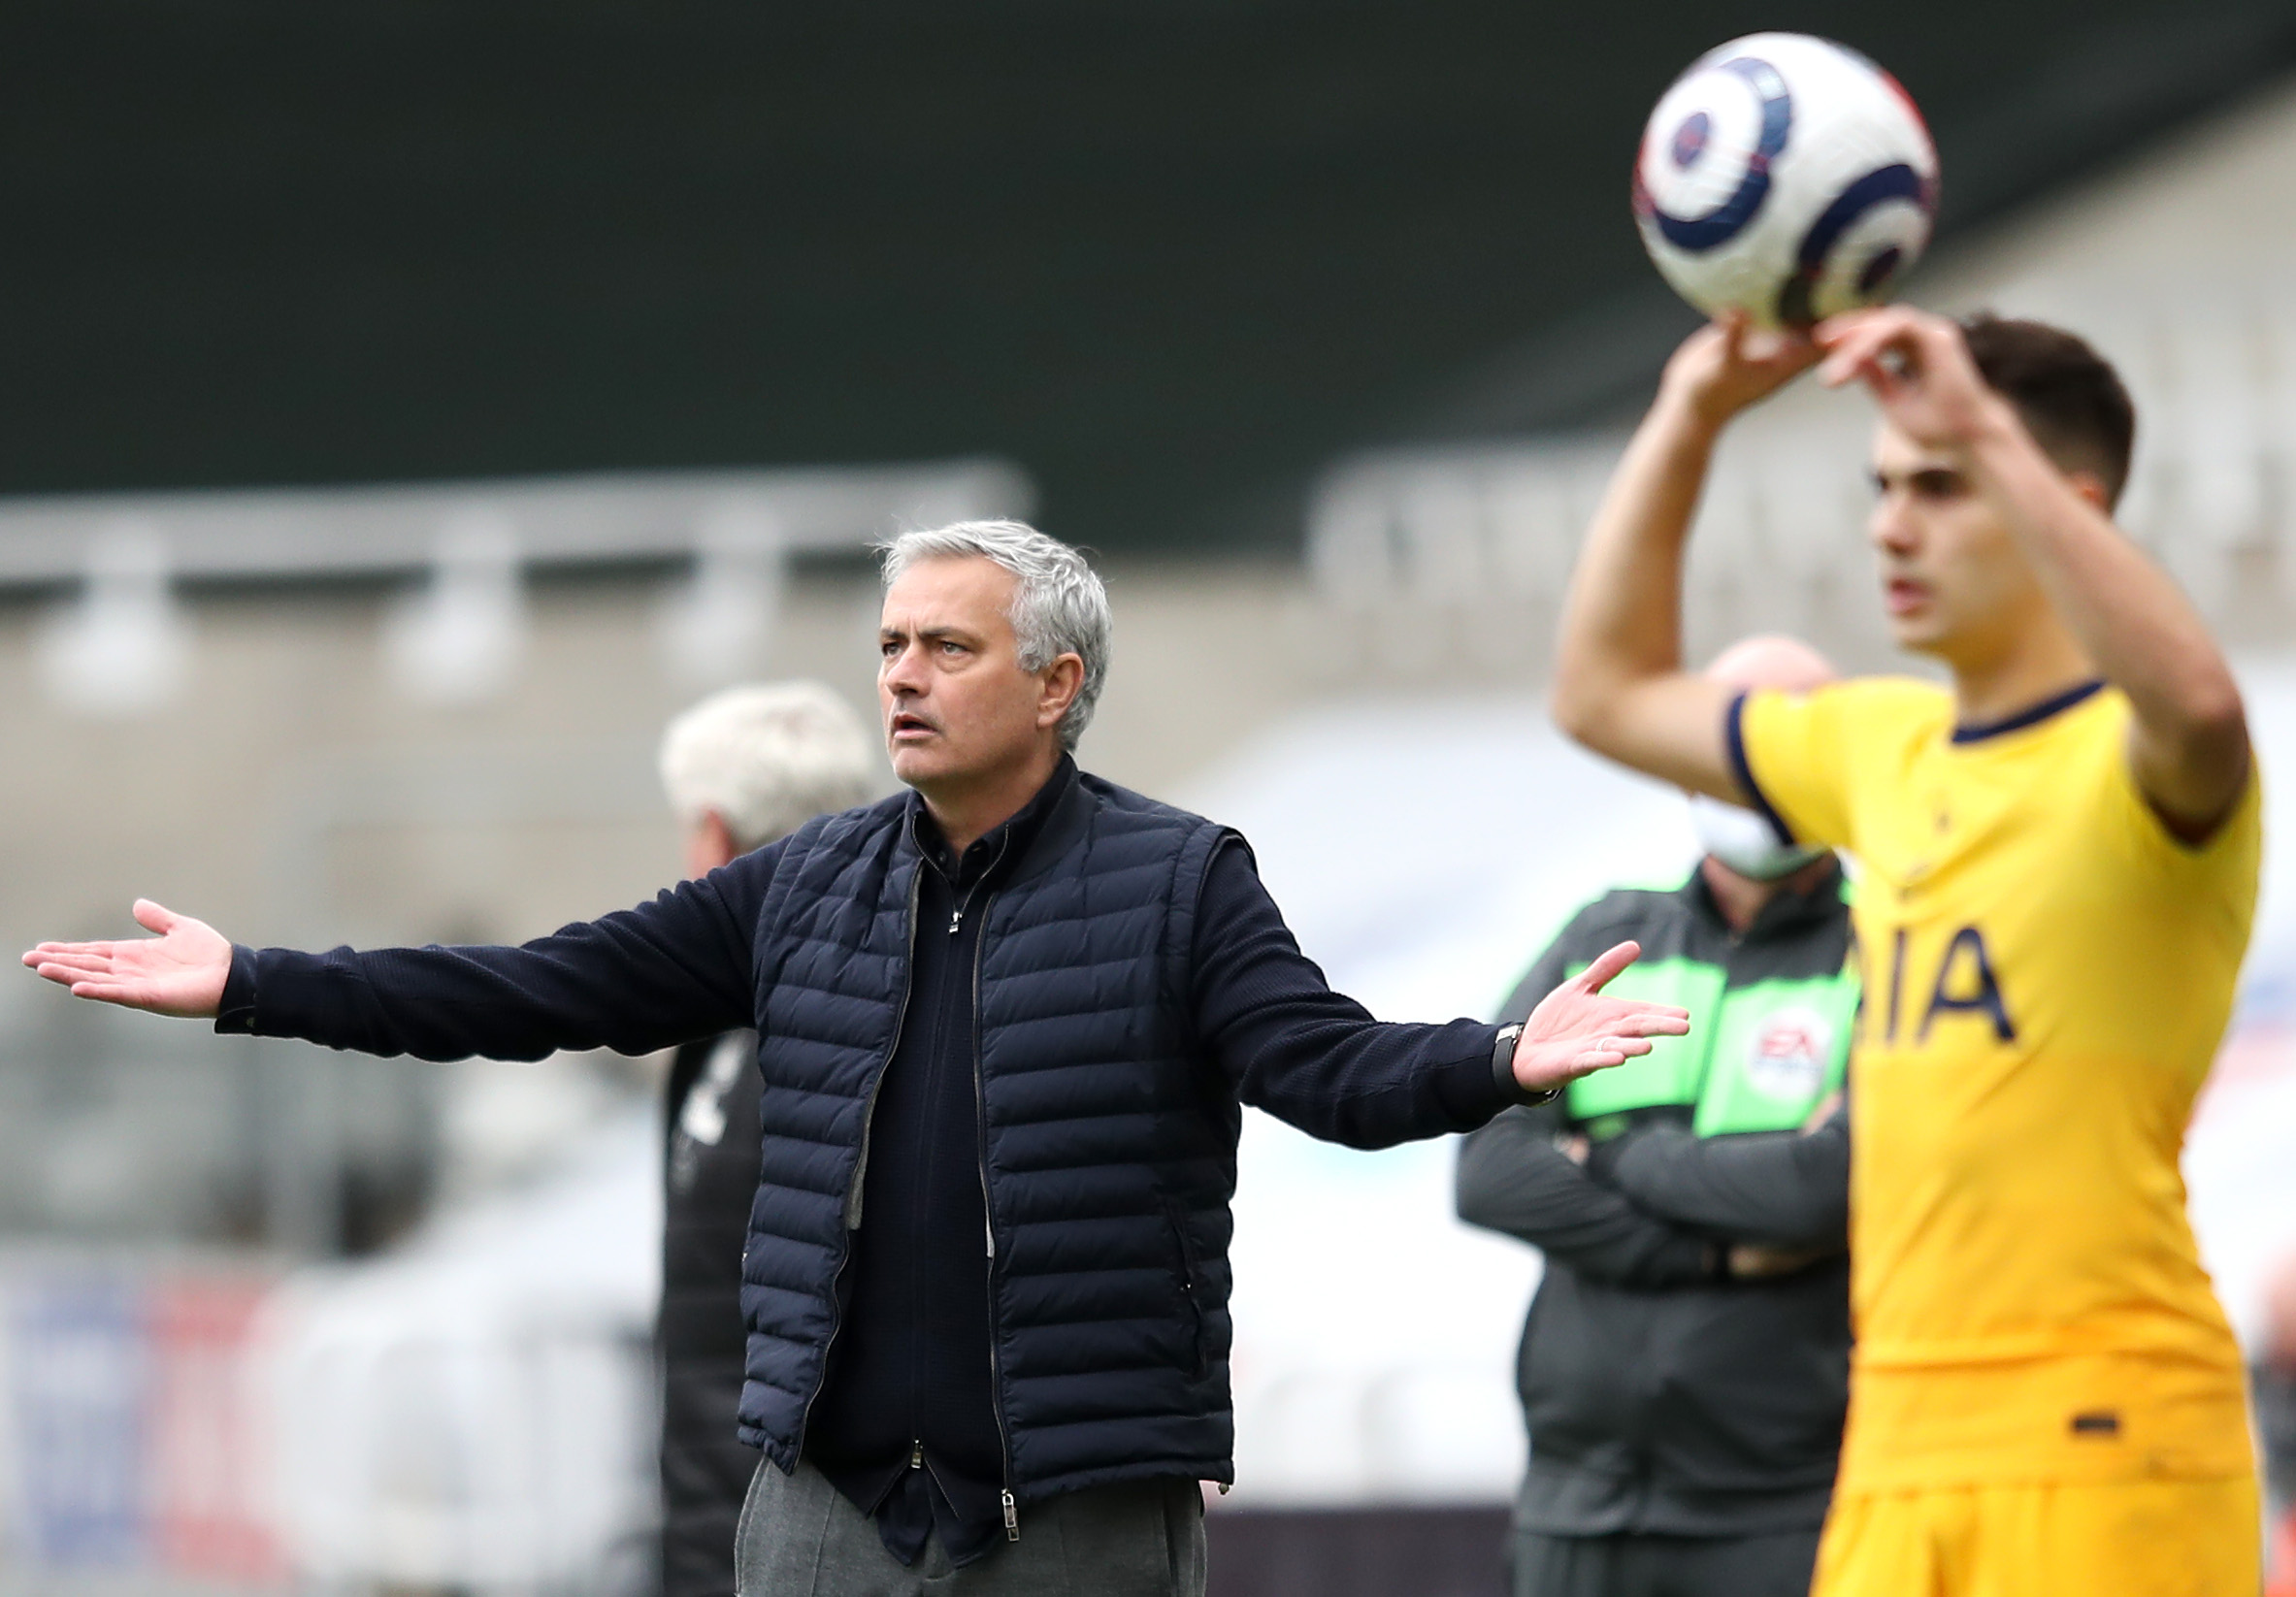 Mourinho asked to explain why he can't keep a lead, his former trademark: Same coach, different players